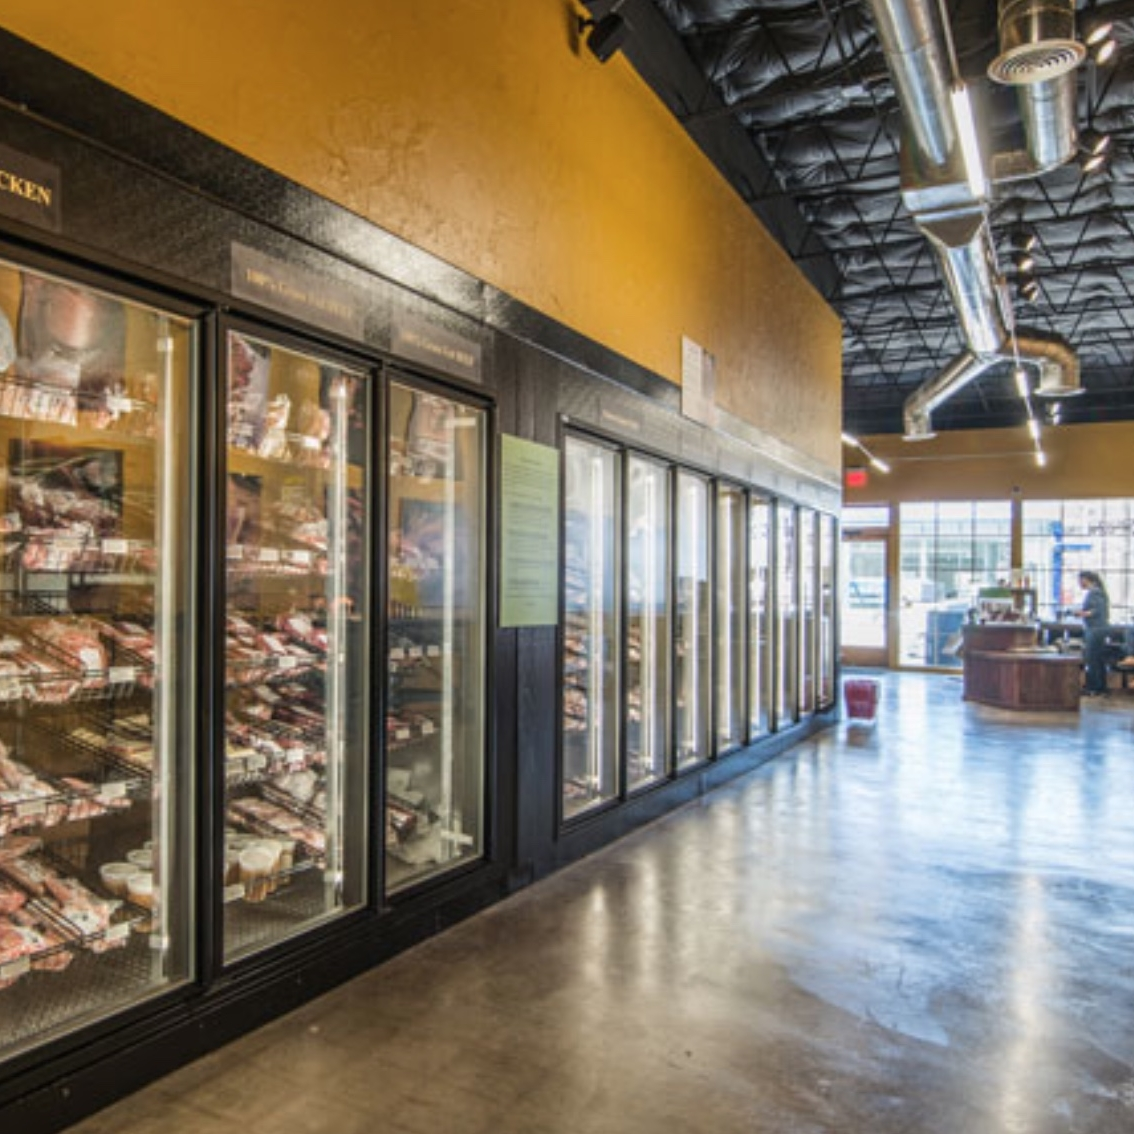 Burgundy's Local    Now you can get Burgundy Pasture Beef, along with other grass-fed, local meats, plus various Stocks & Bondy items at the newest Burgundy's Local near Downtown Dallas' Arts District.    3314 Ross Avenue, Suite 100 | Dallas, TX | 75204  P: 972.707.7241  Monday–Saturday 10 AM - 7 PM | Sunday 11 AM – 4 PM